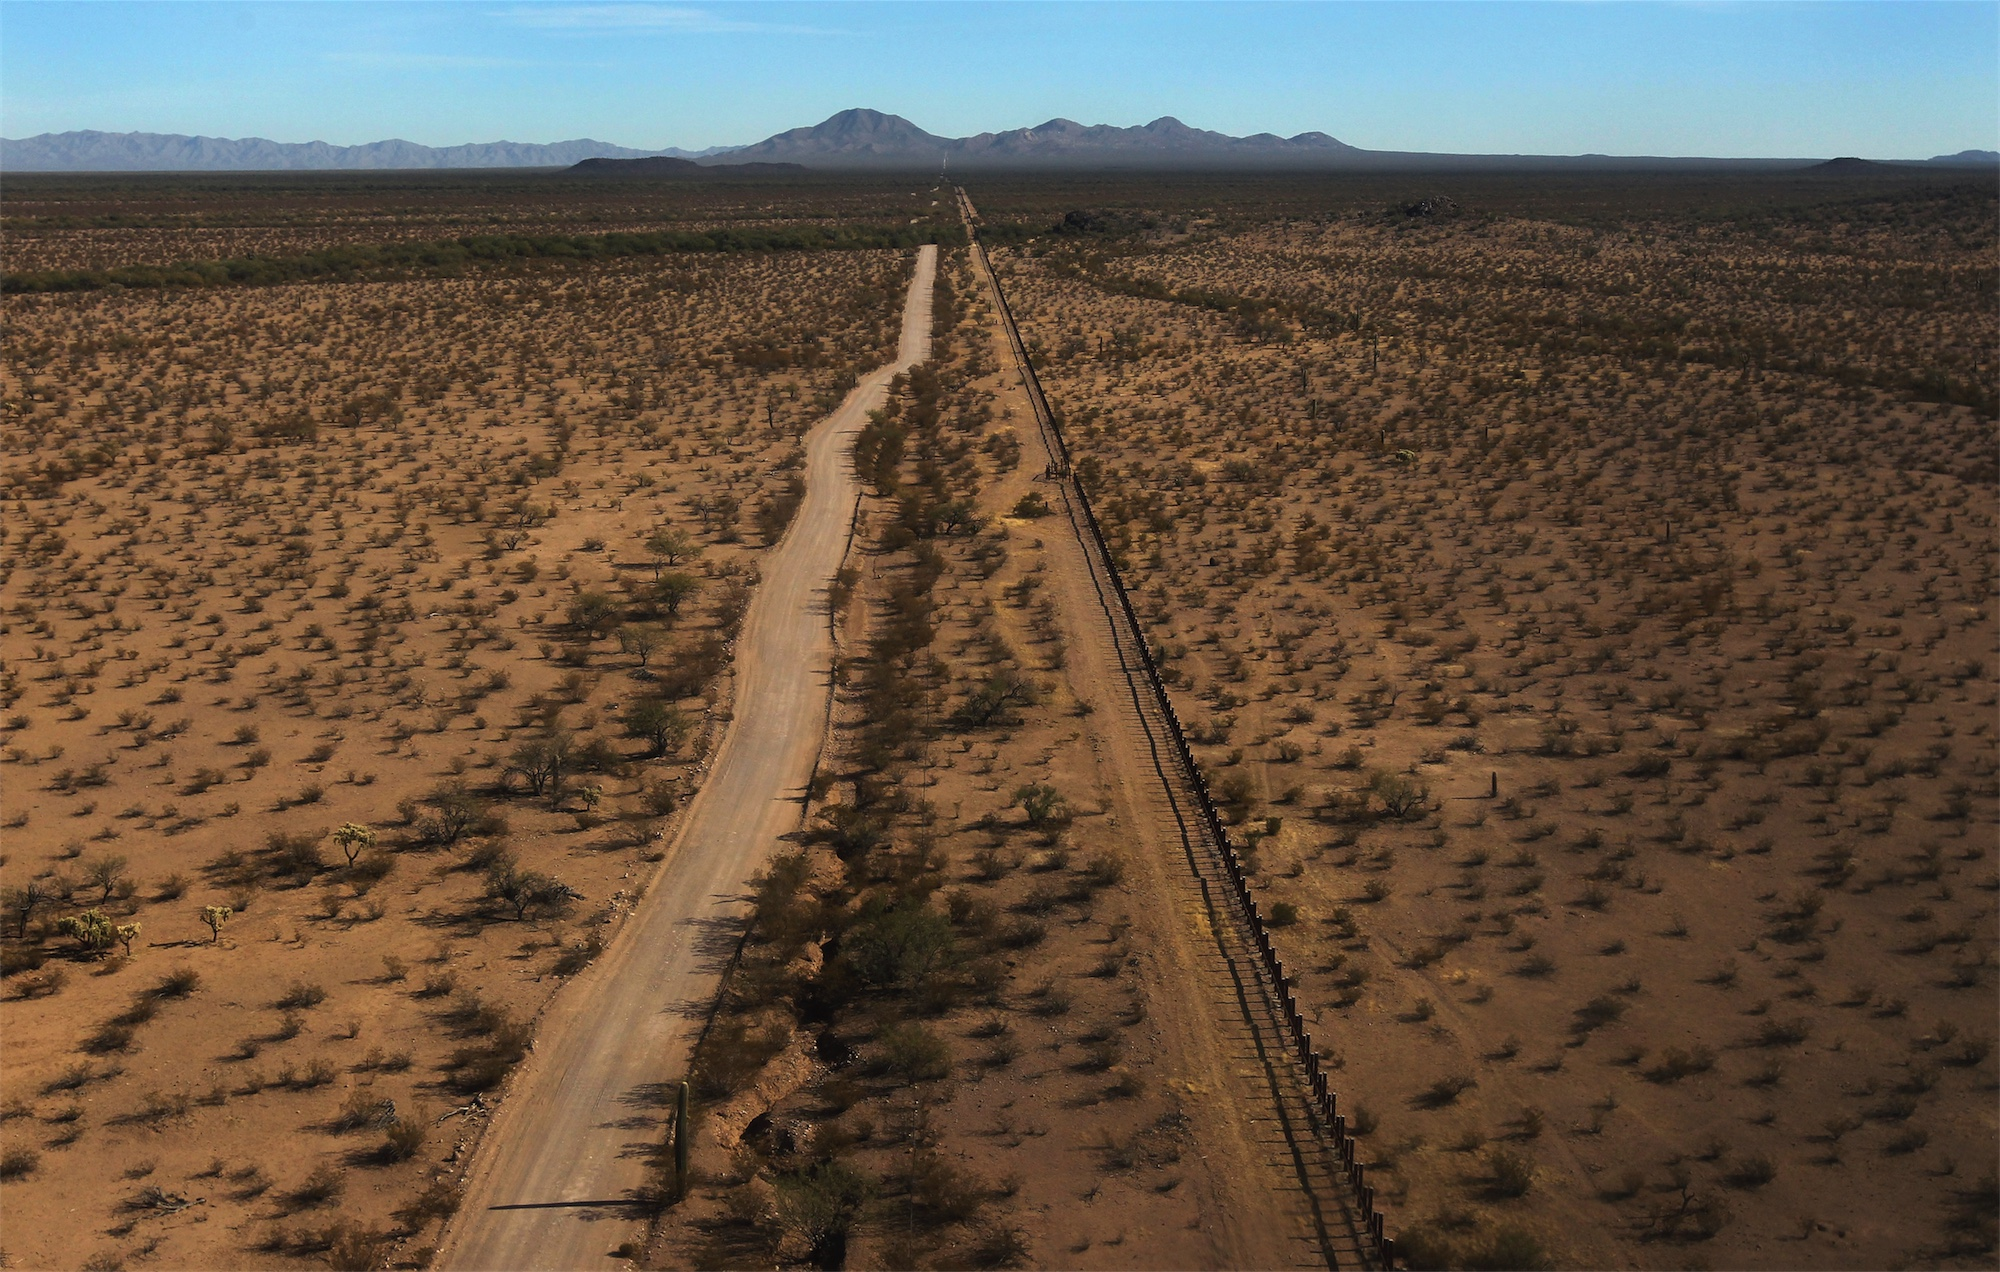 The U.S.-Mexico border fence through the Sonoran Desert, in the Tohono O'odham Reservation, Arizona. Getty Images